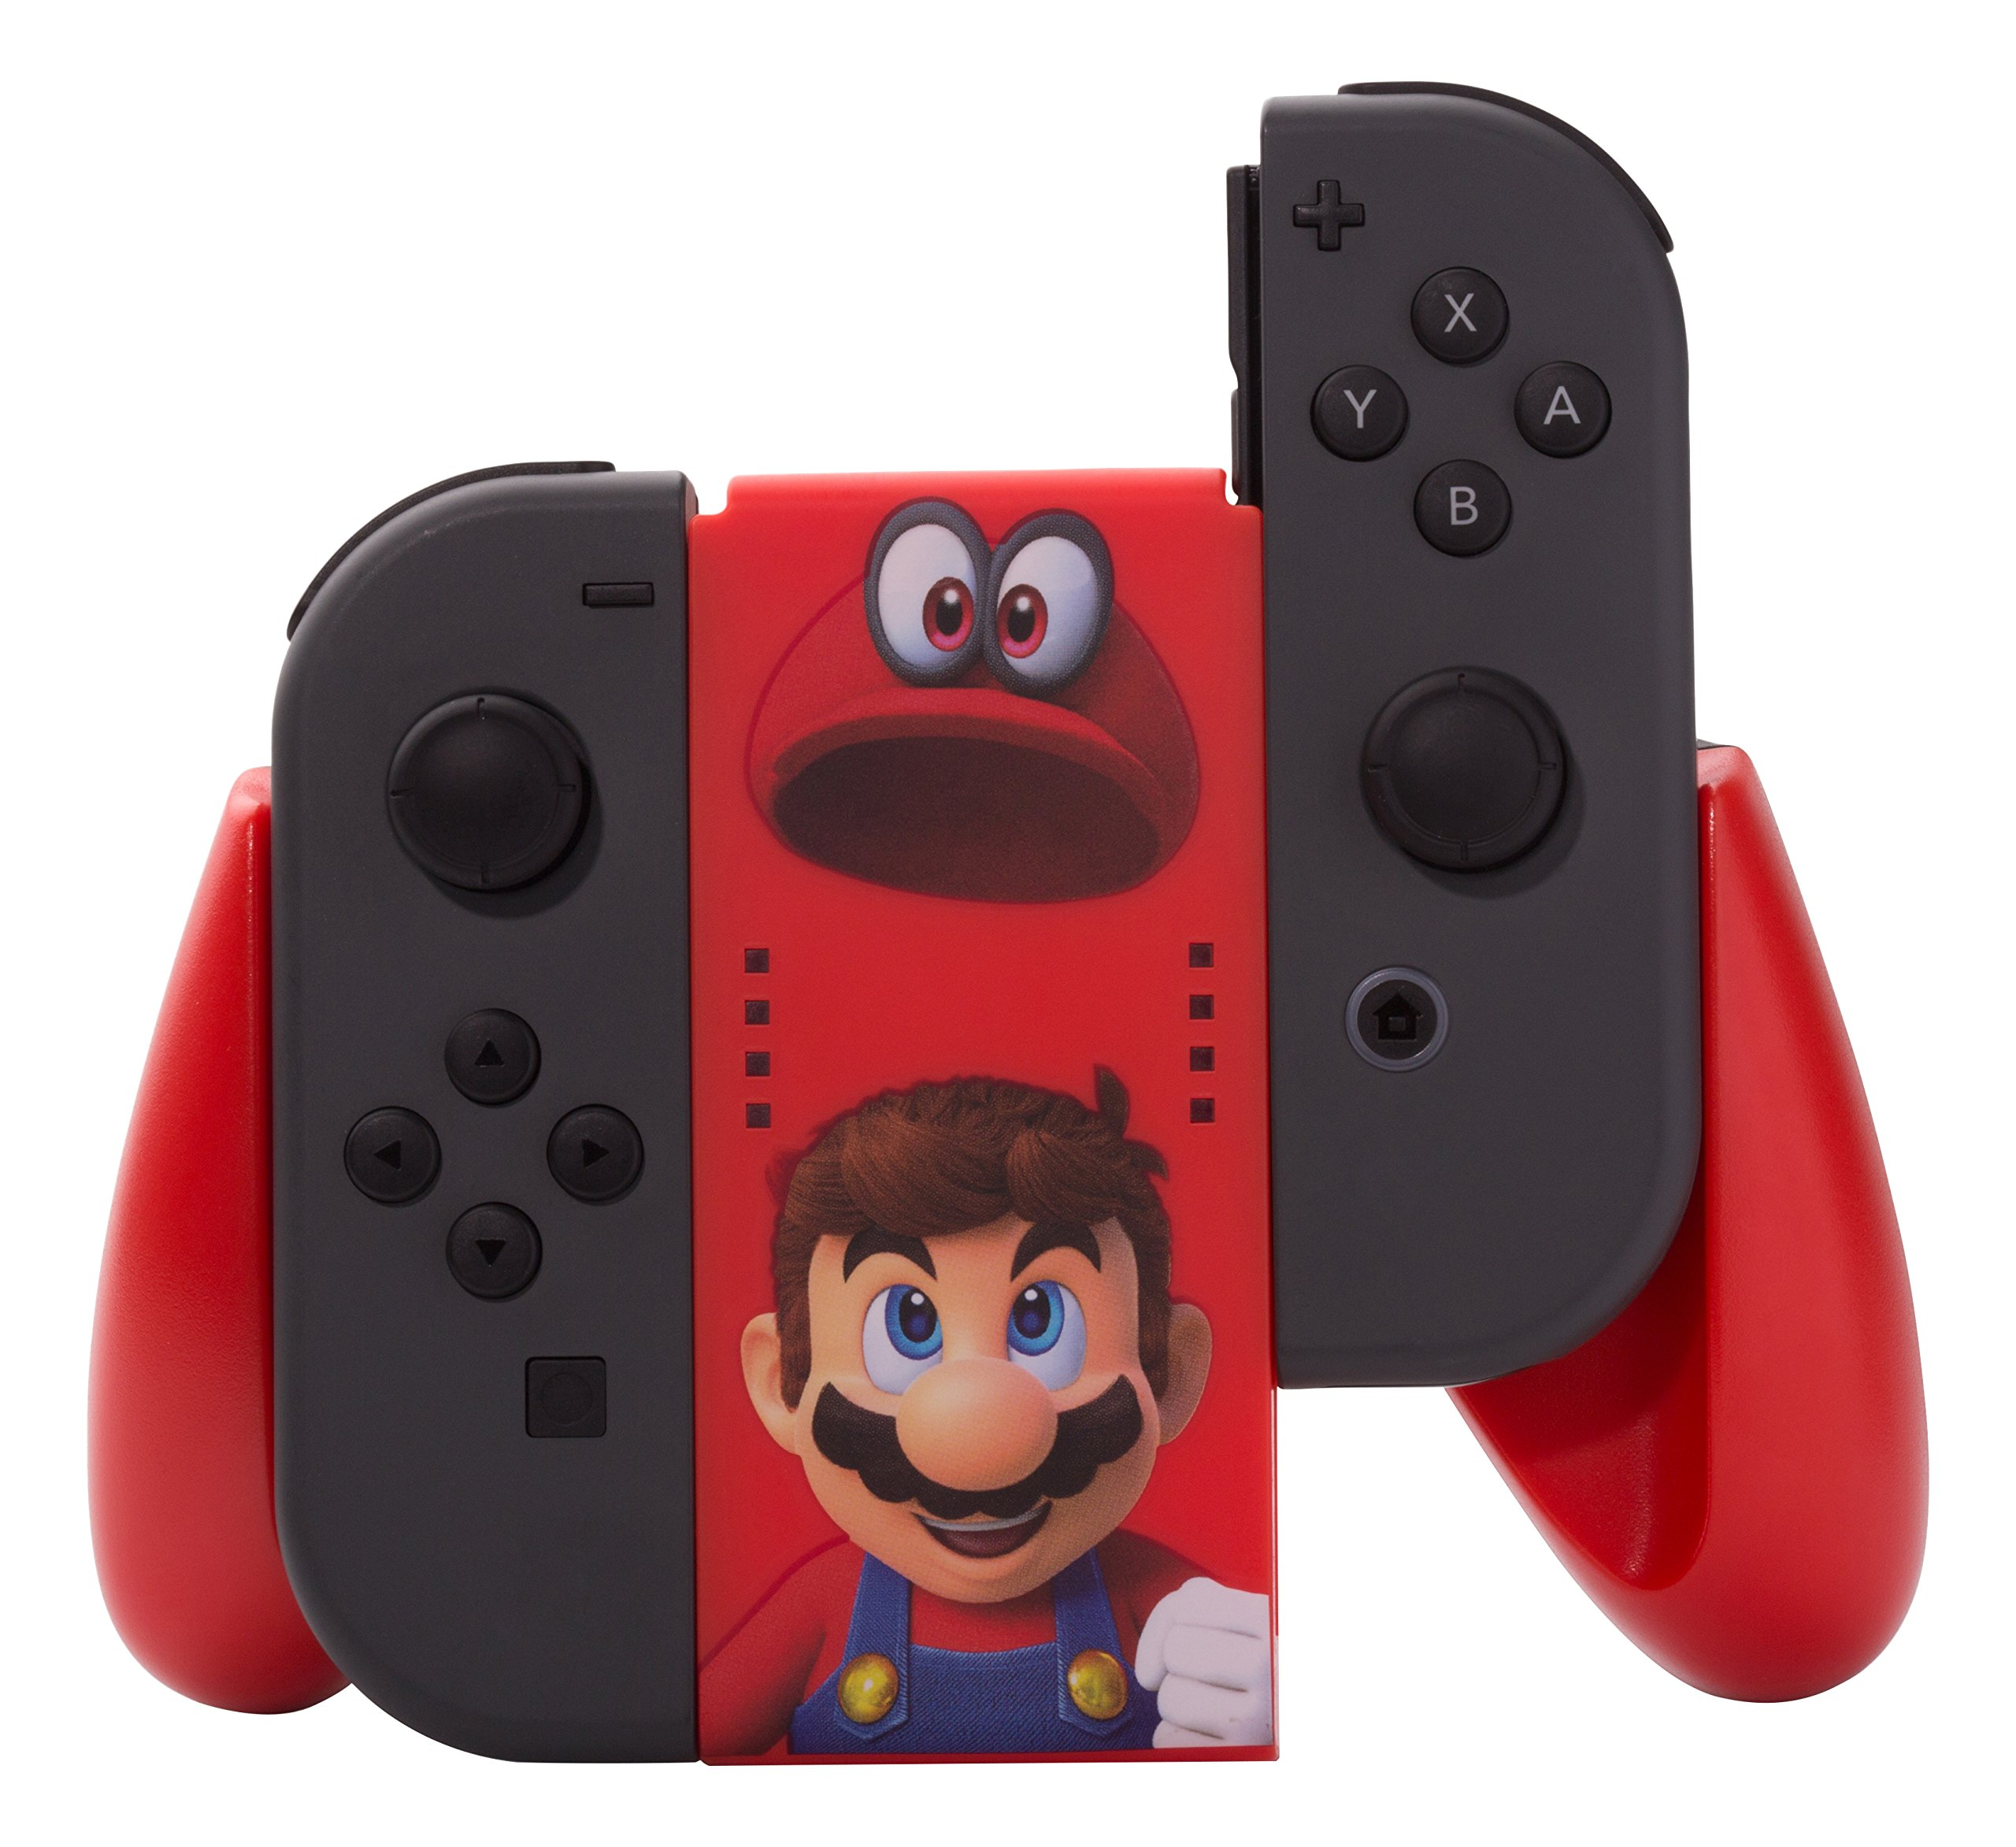 PowerA - Comfort Grip Para 2 Joy-Con De Mario Odyssey (Nintendo Switch): Amazon.es: Videojuegos